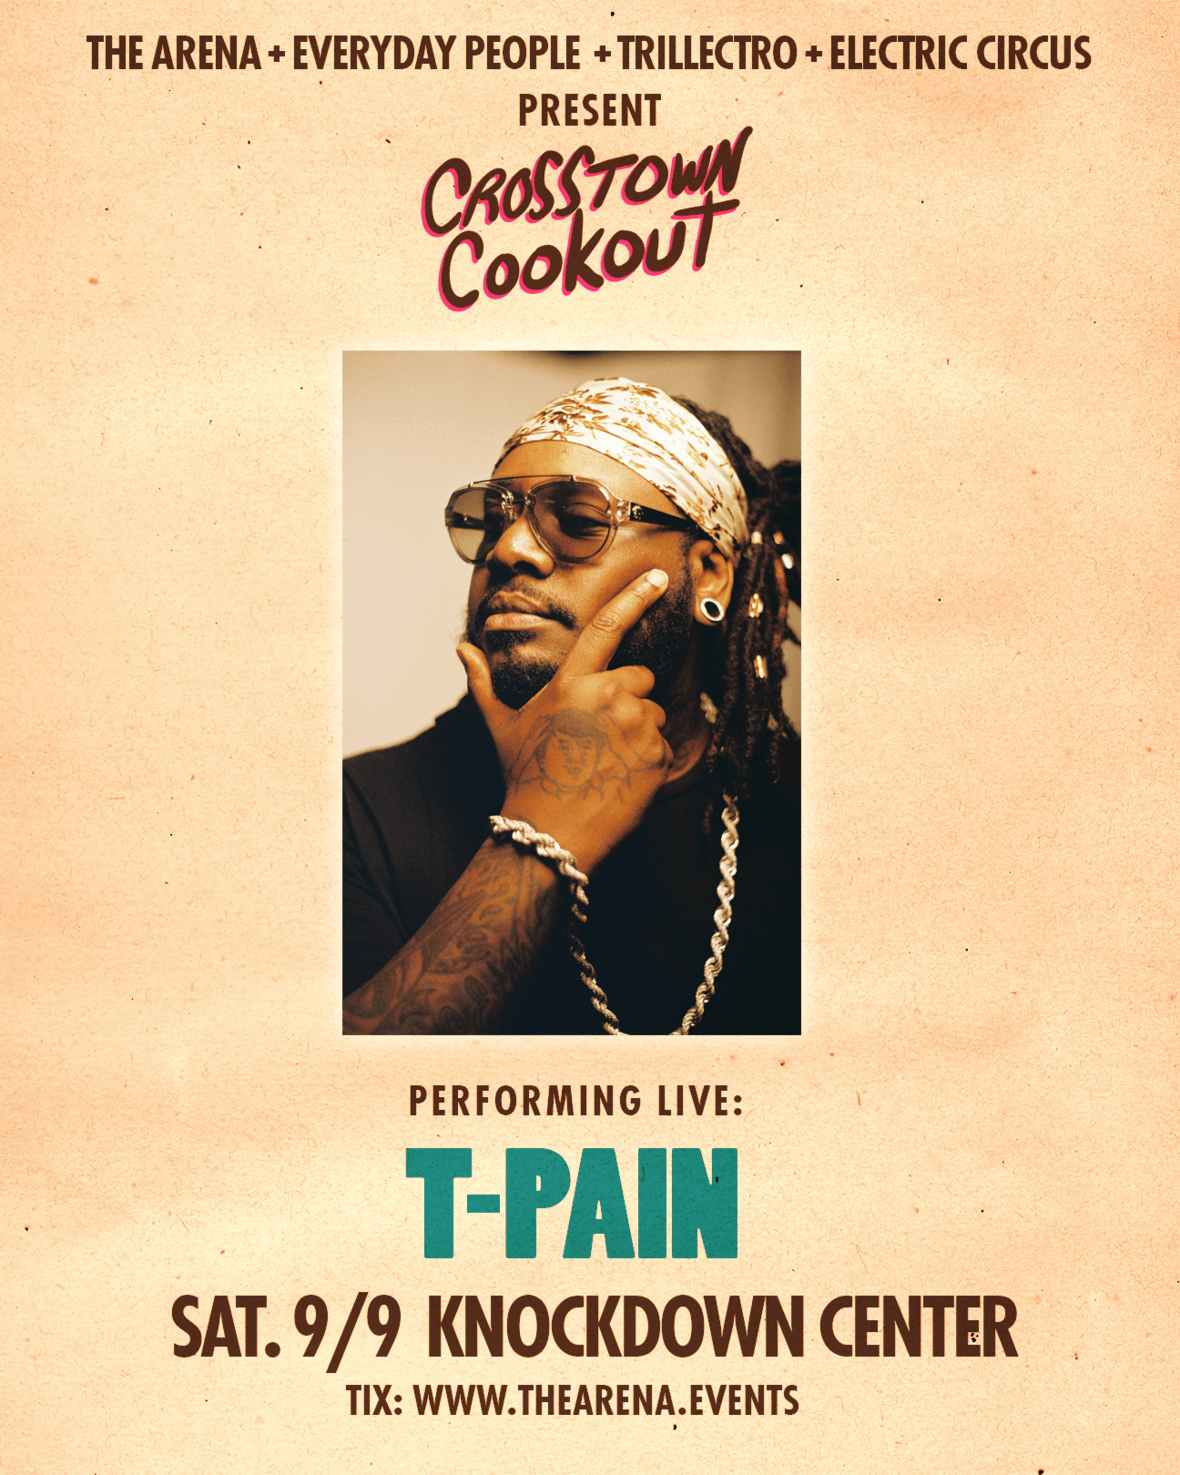 Crosstown Cookout with T-Pain at Knockdown Center in Queens [Events]